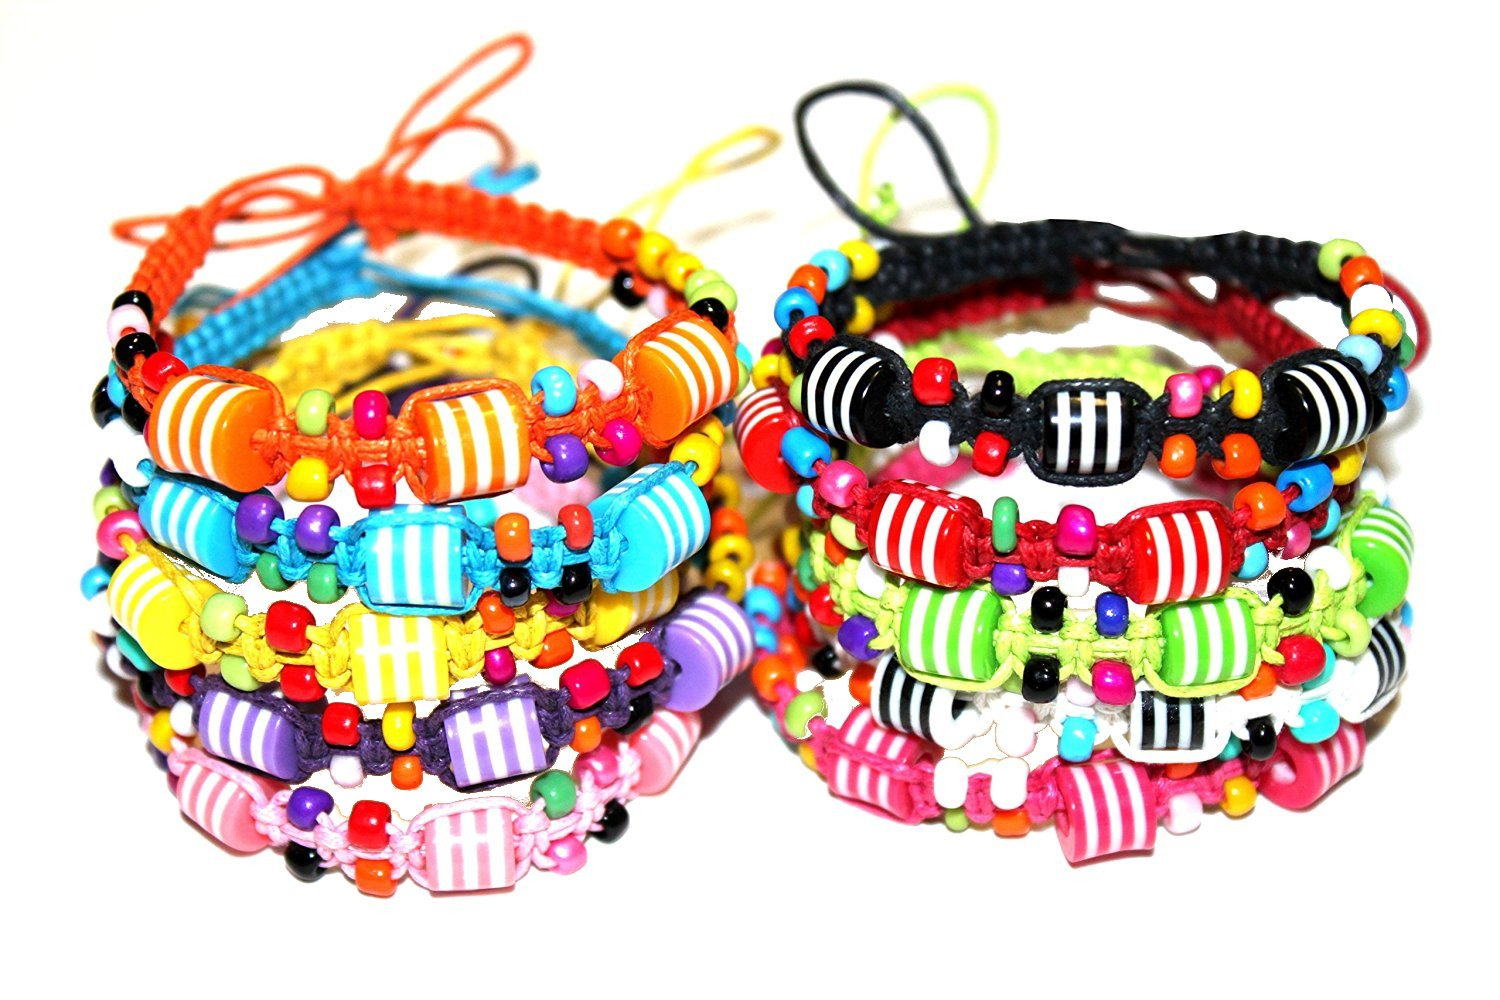 Syleia Colorful Friendship Bracelets Fashion Jewelry Set of 10 Party Favors With Striped Beads by Syleia